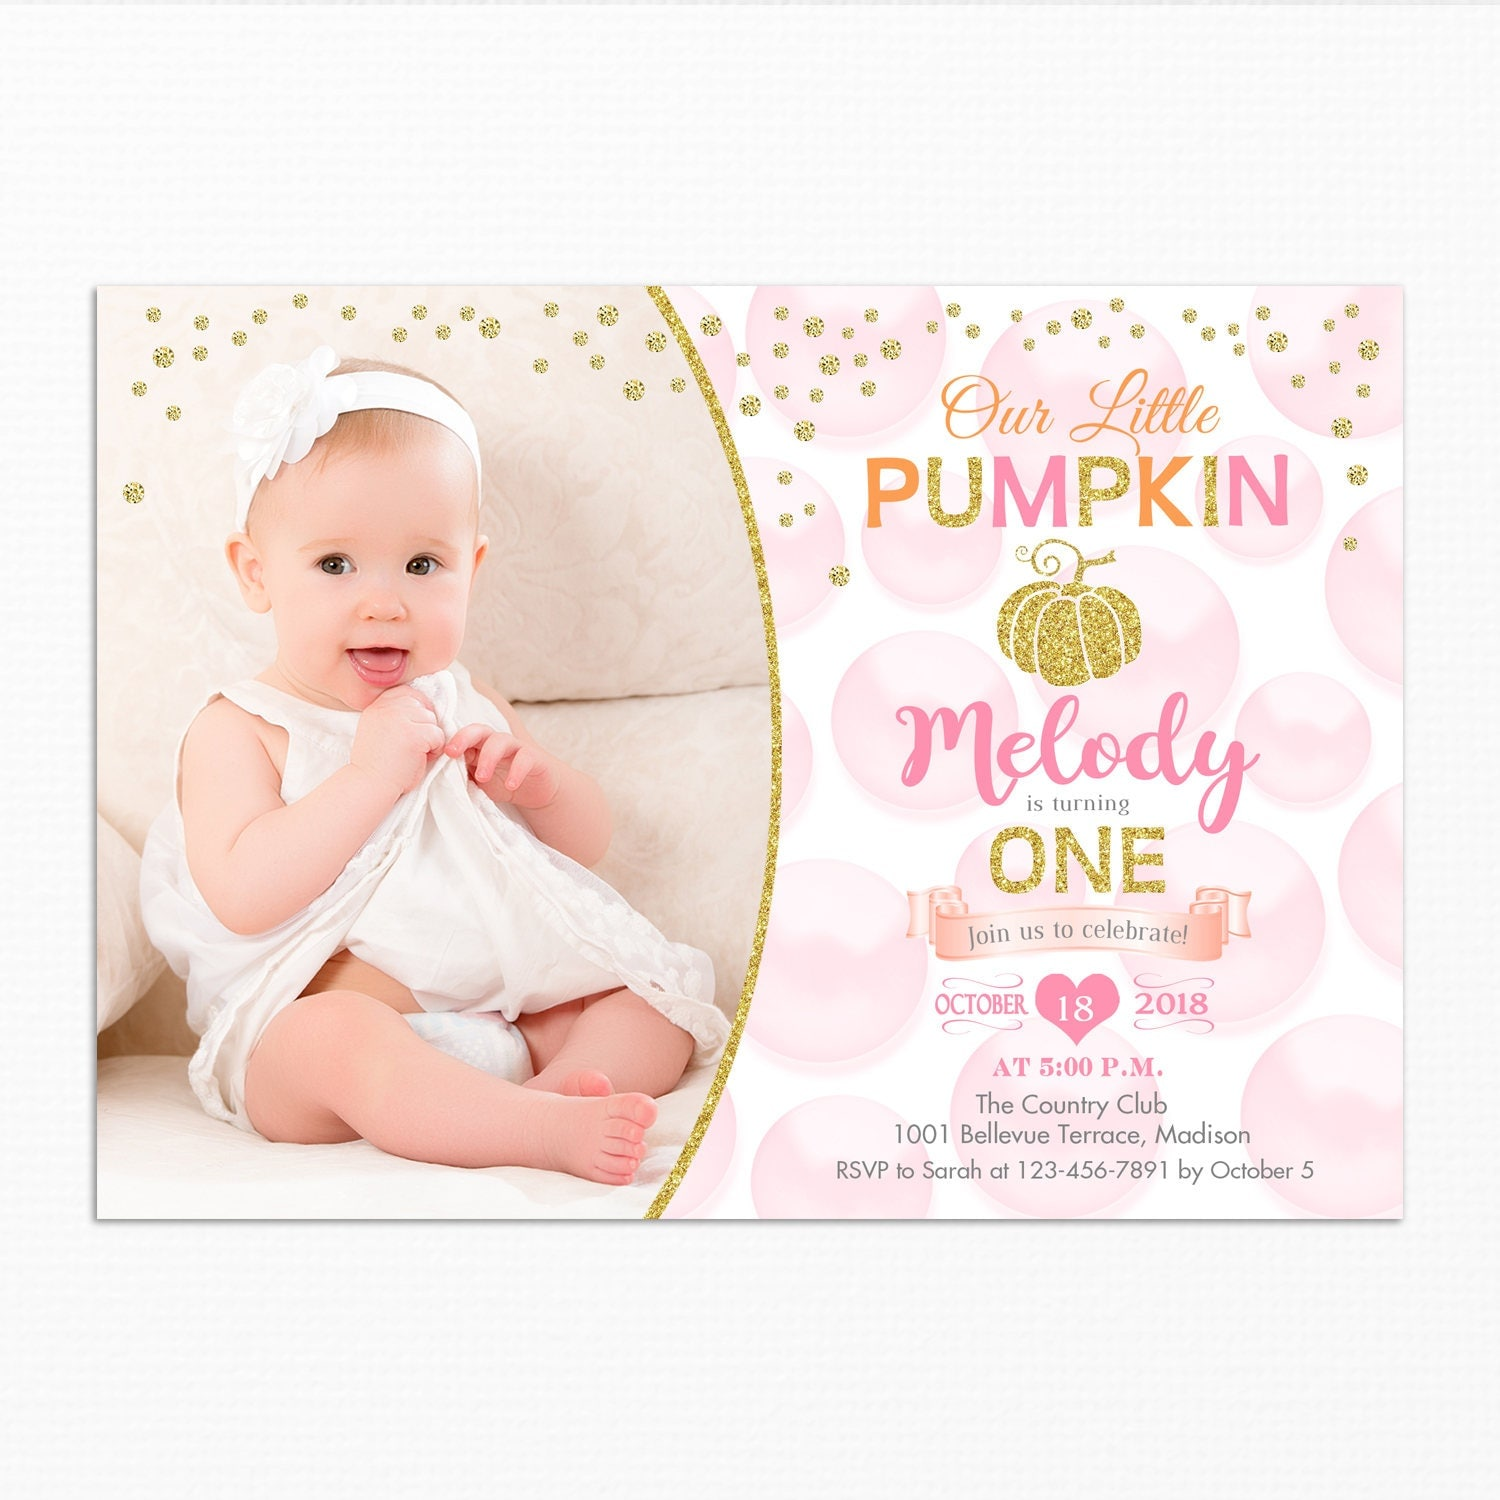 Pumpkin first birthday invitation for girl with photo any age 1st pumpkin first birthday invitation for girl with photo any age 1st 2nd fall filmwisefo